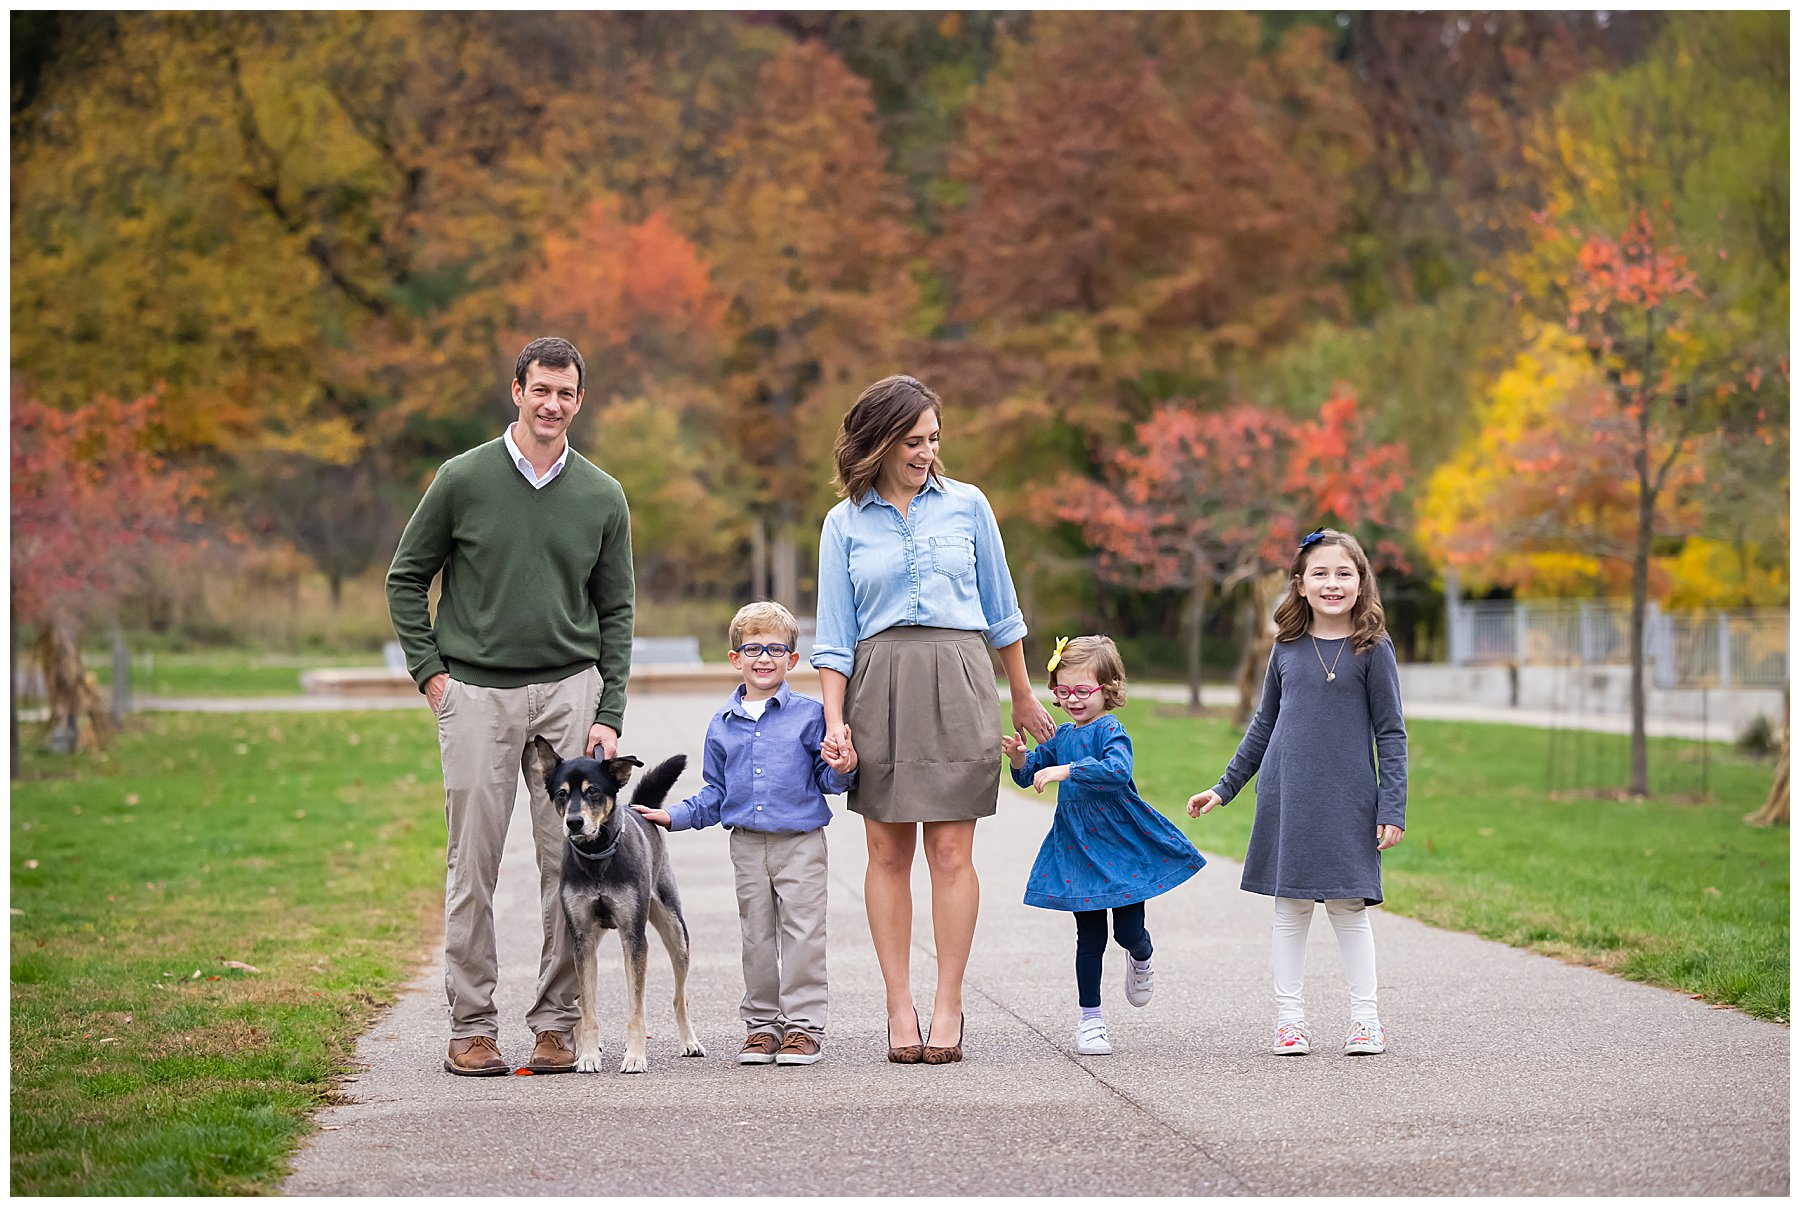 Zur for Judge | Pittsburgh Family Photographer / Lawyer Branding